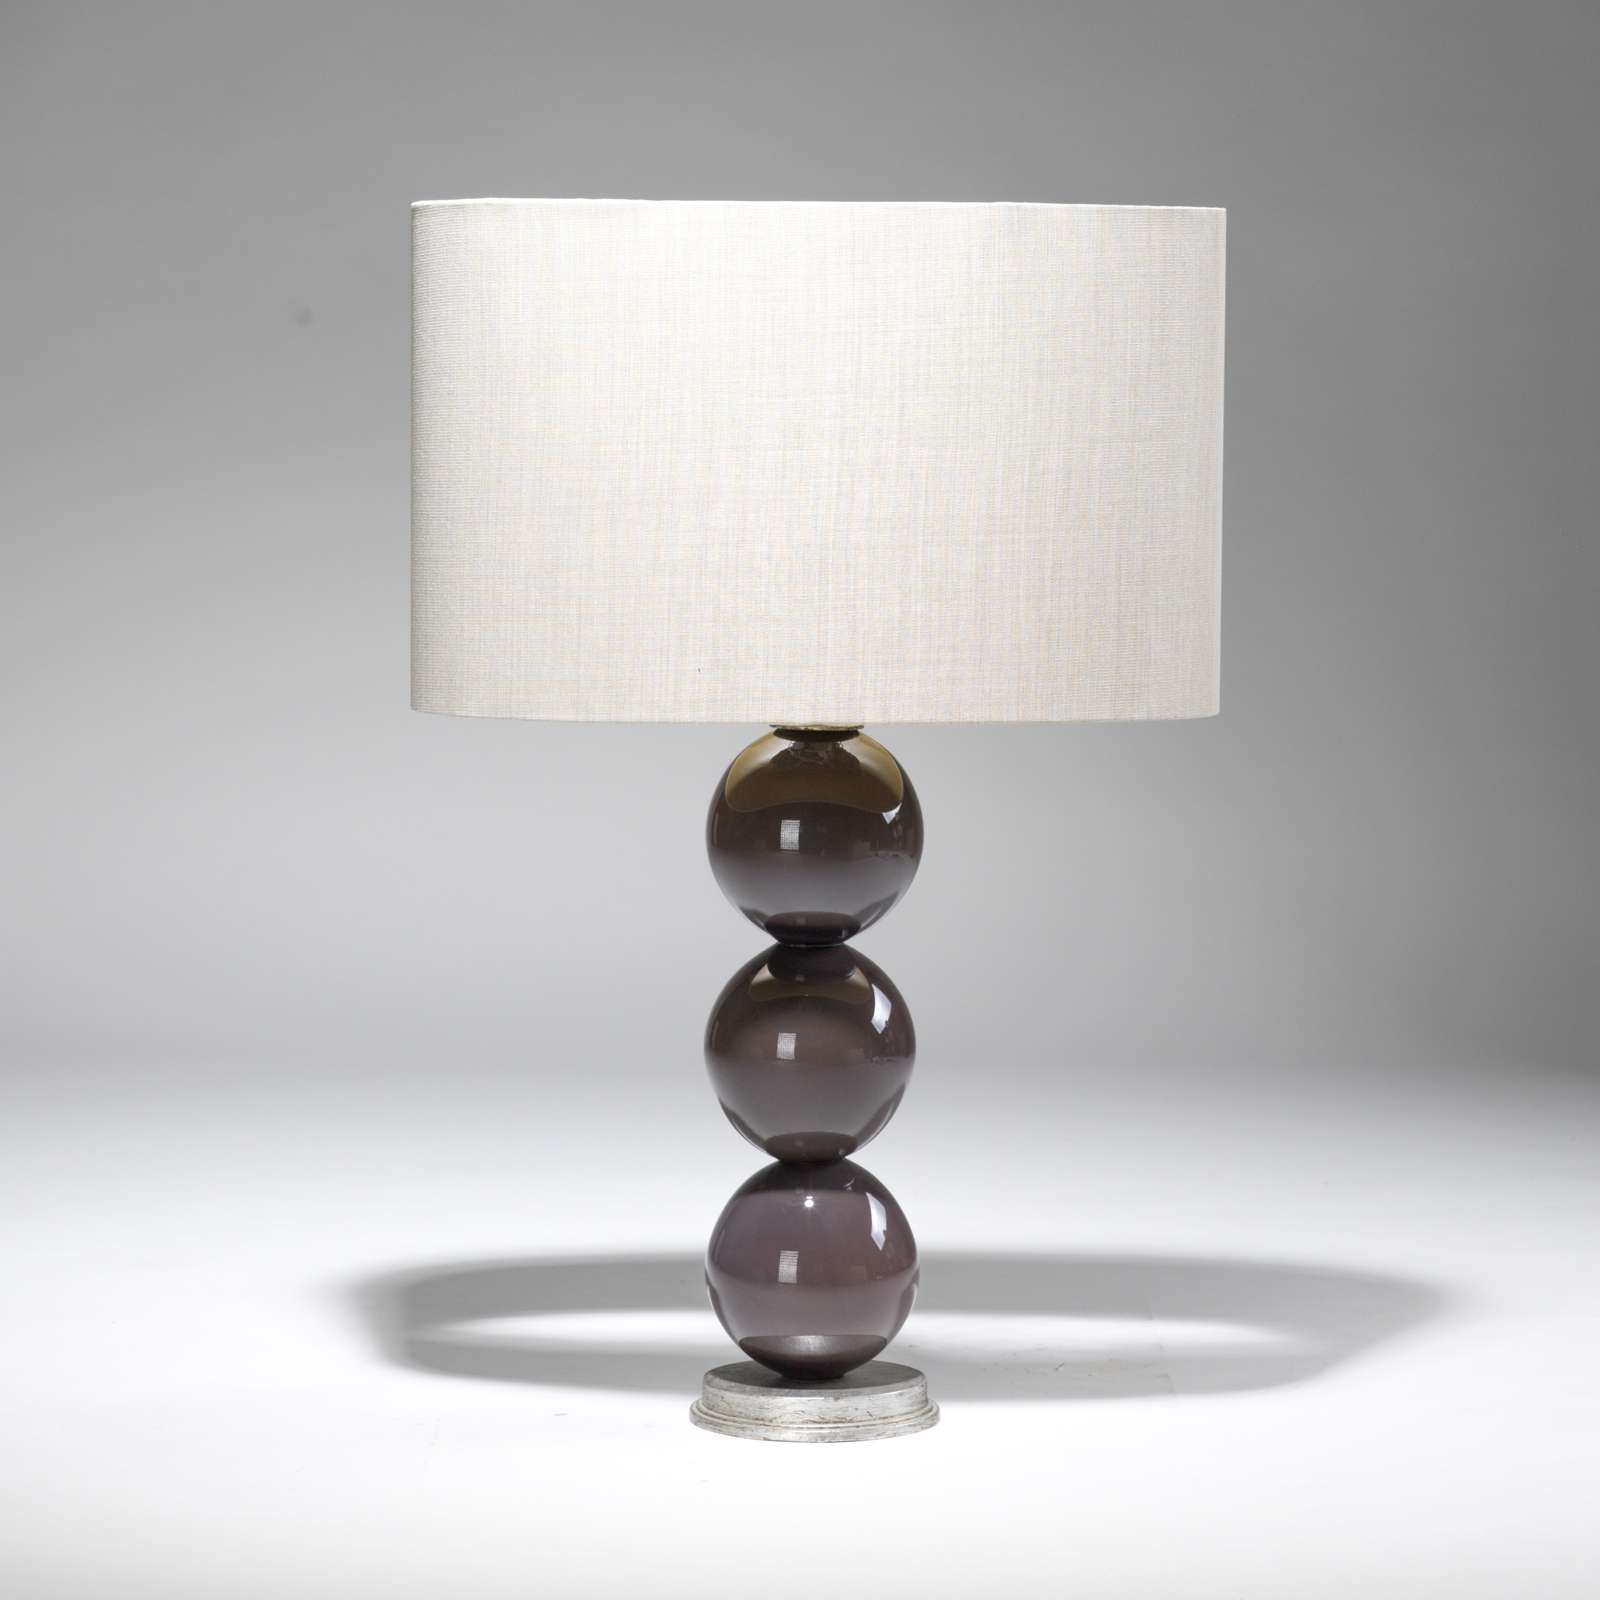 glass pixels ball lights lamp pin